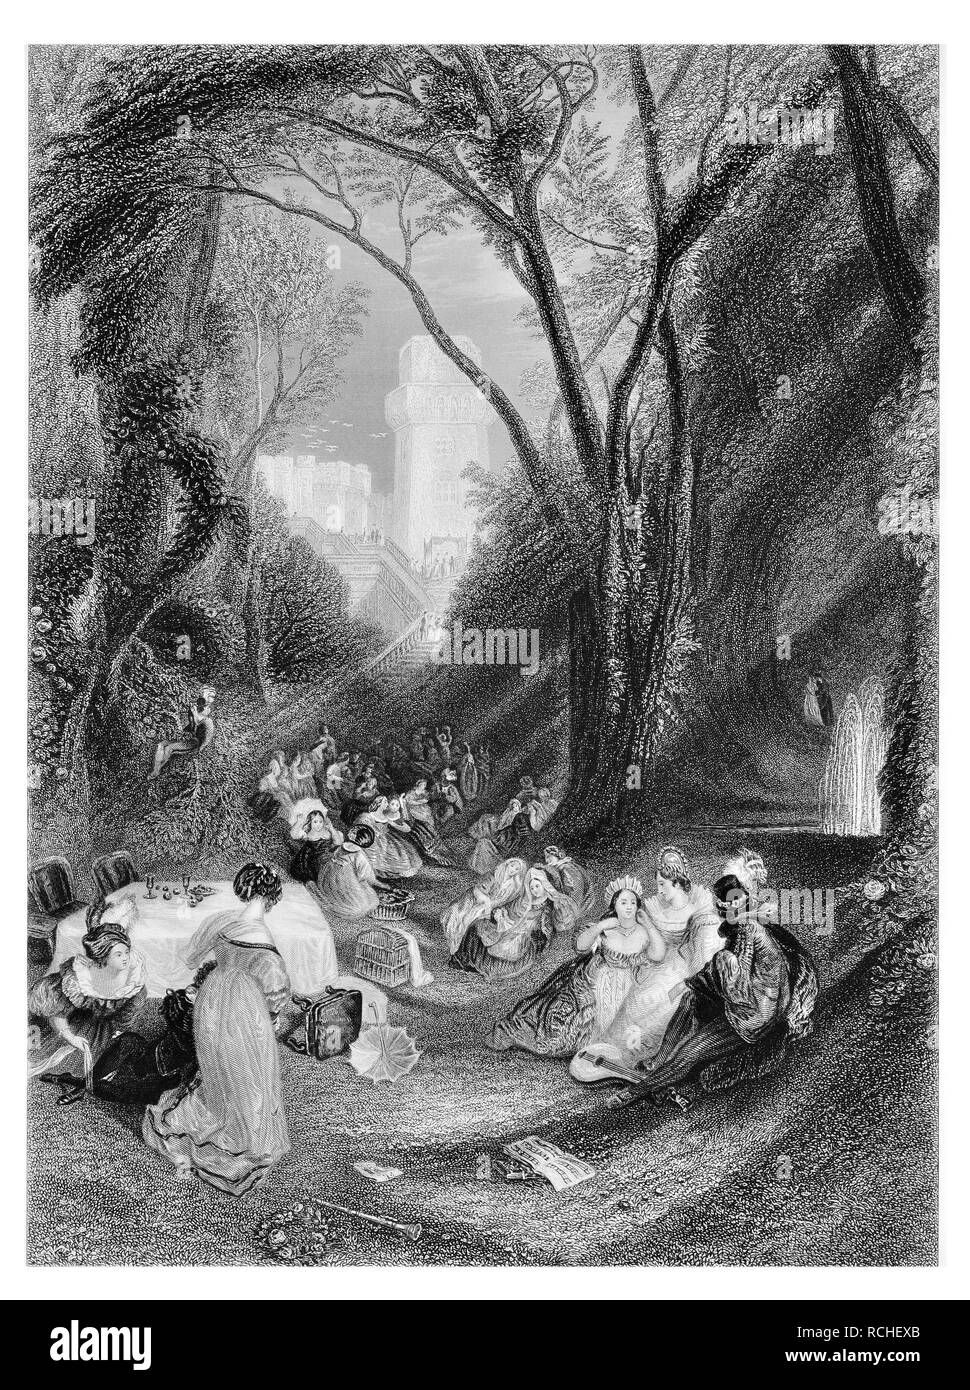 J.M.W Turner The Birdcage a scene from Boccaccio engraved by C.H.Jeens - Stock Image